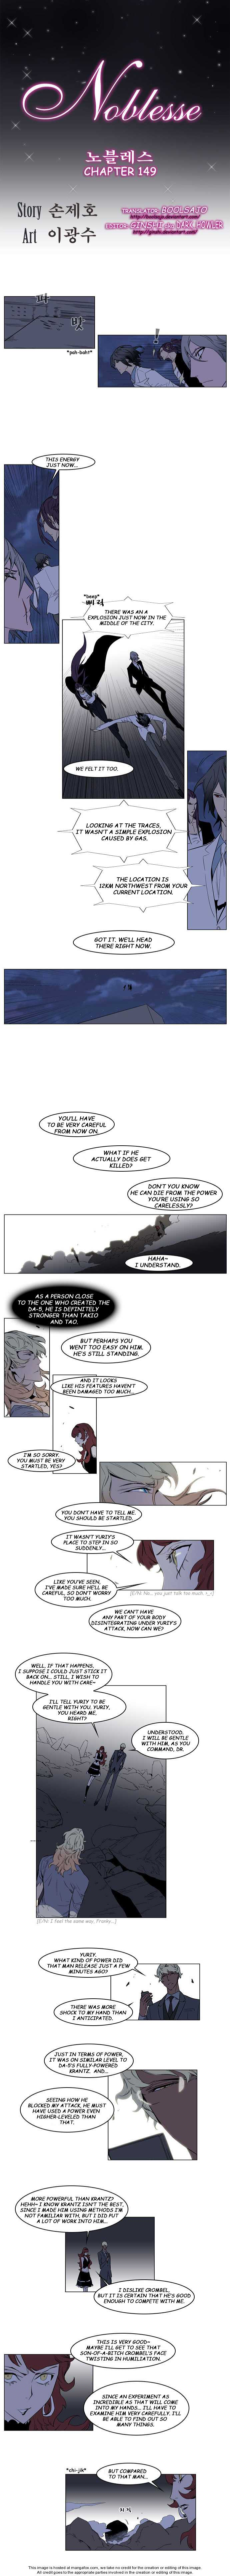 Noblesse 149 Page 1